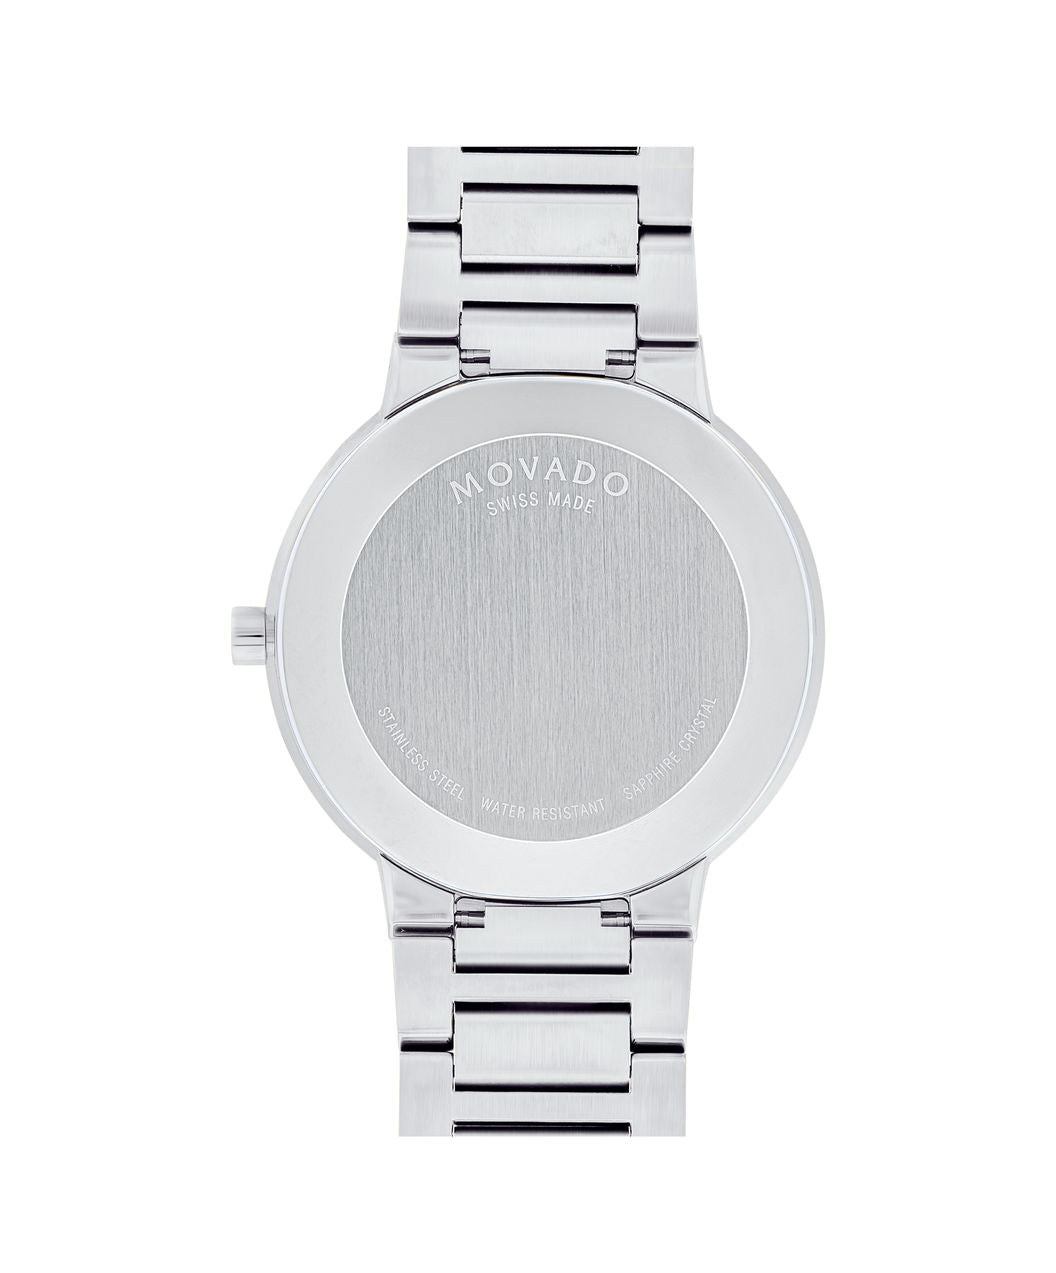 Movado Watch Modern Classic - 39mm Stainless Steel with Black Dial